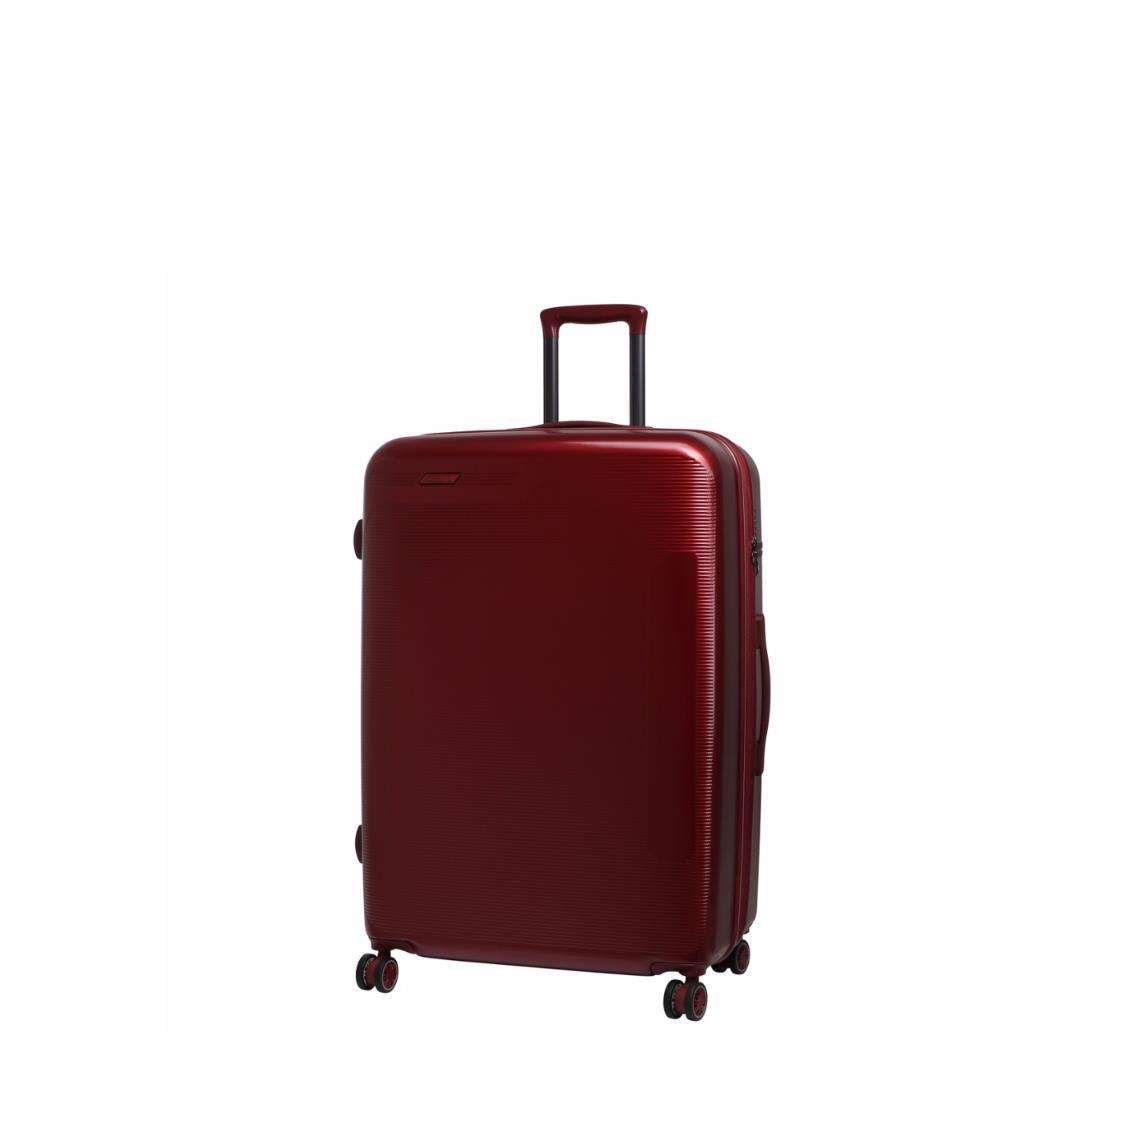 Autograph 4 Wheels Hard Case Luggage in Red